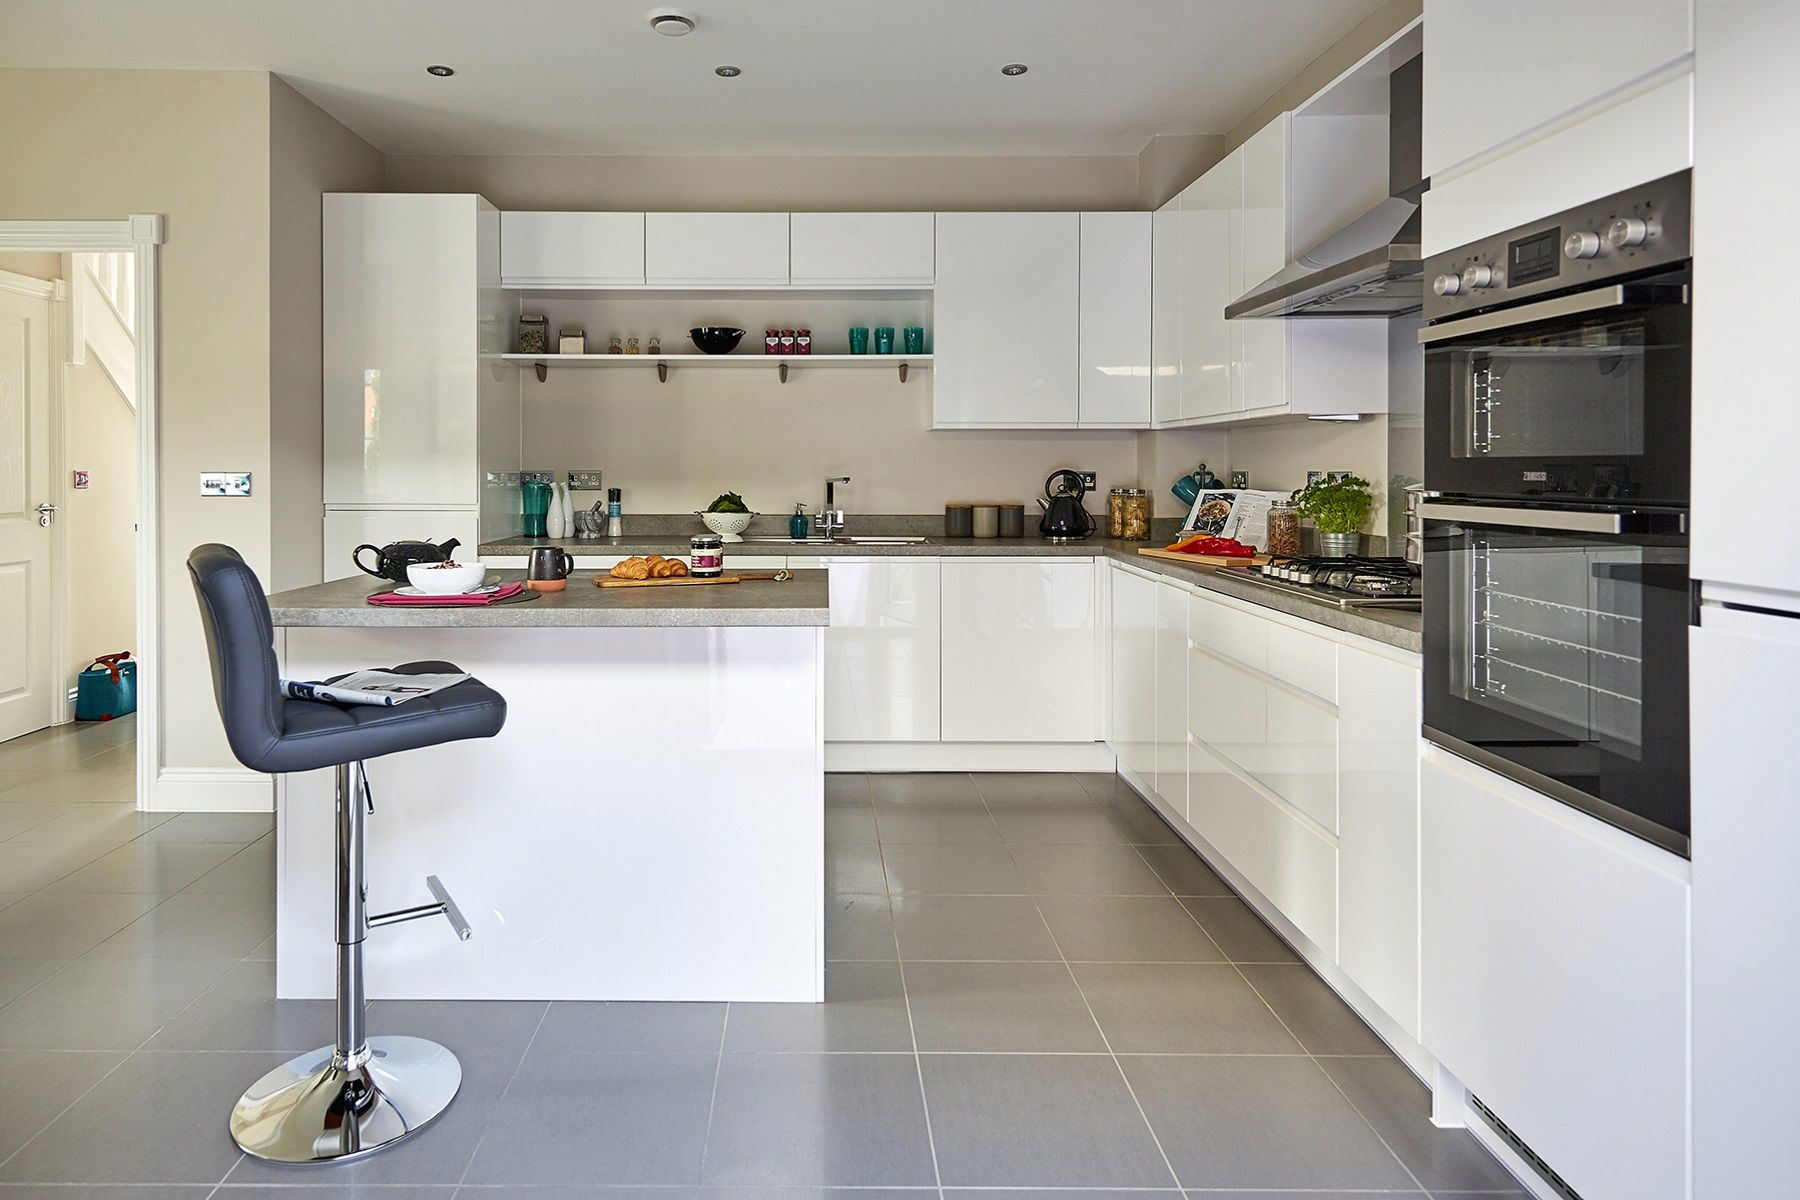 TW Exeter - Sherford - Redwood Show home kitchen 3